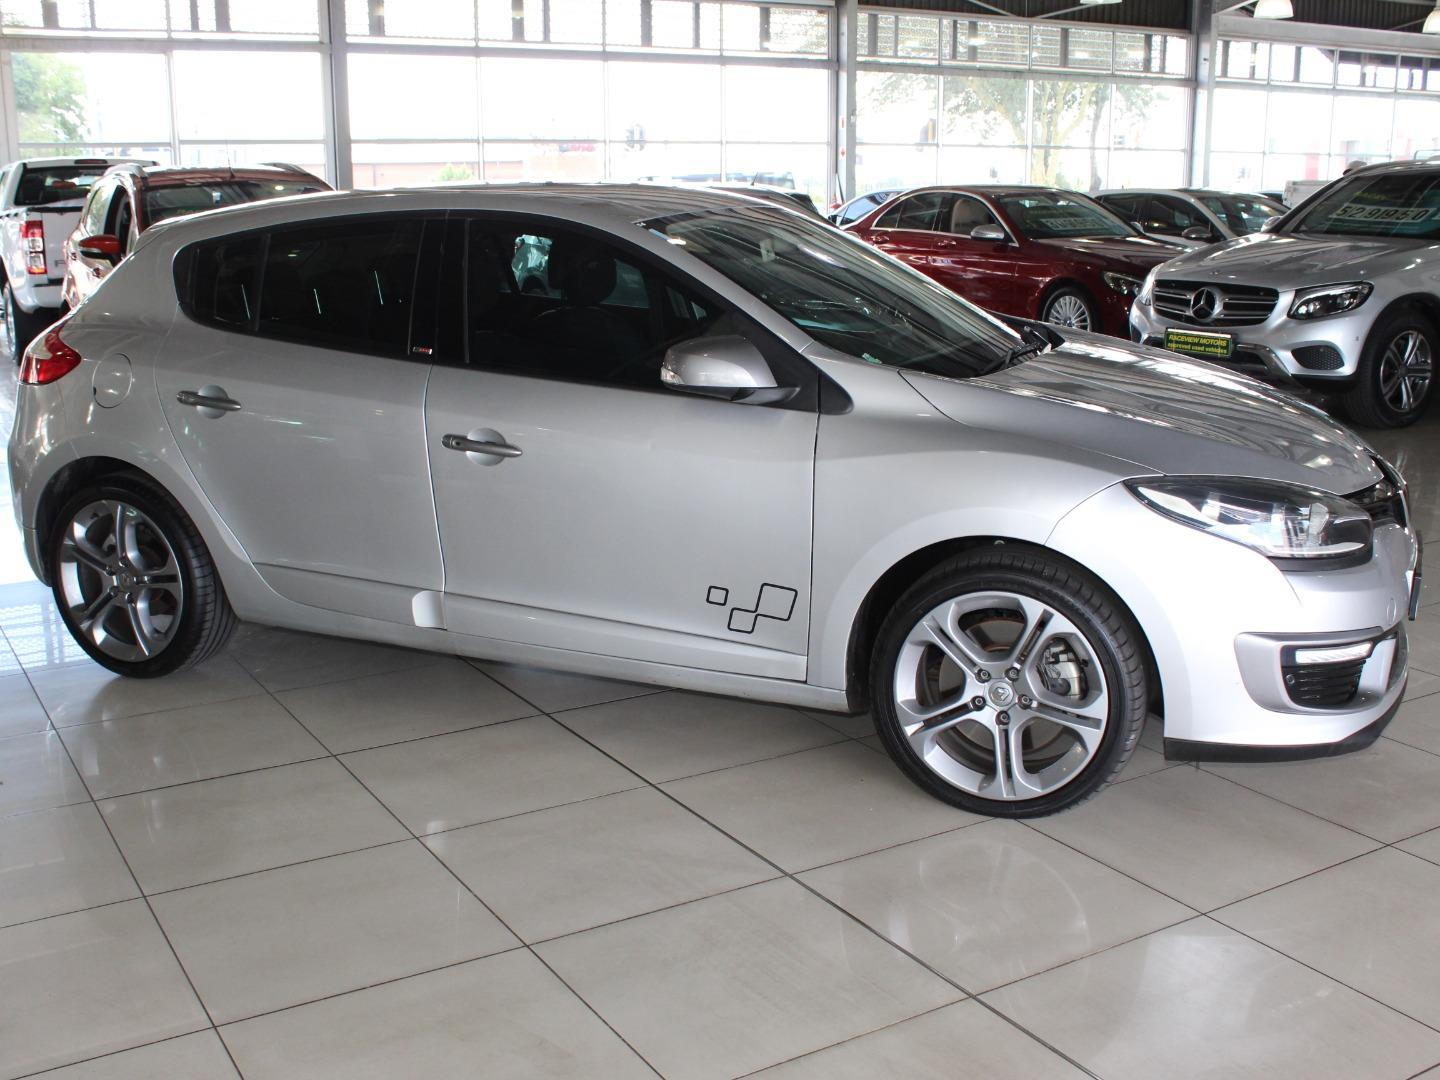 2015 Renault Megane Hatch 162kW Turbo GT